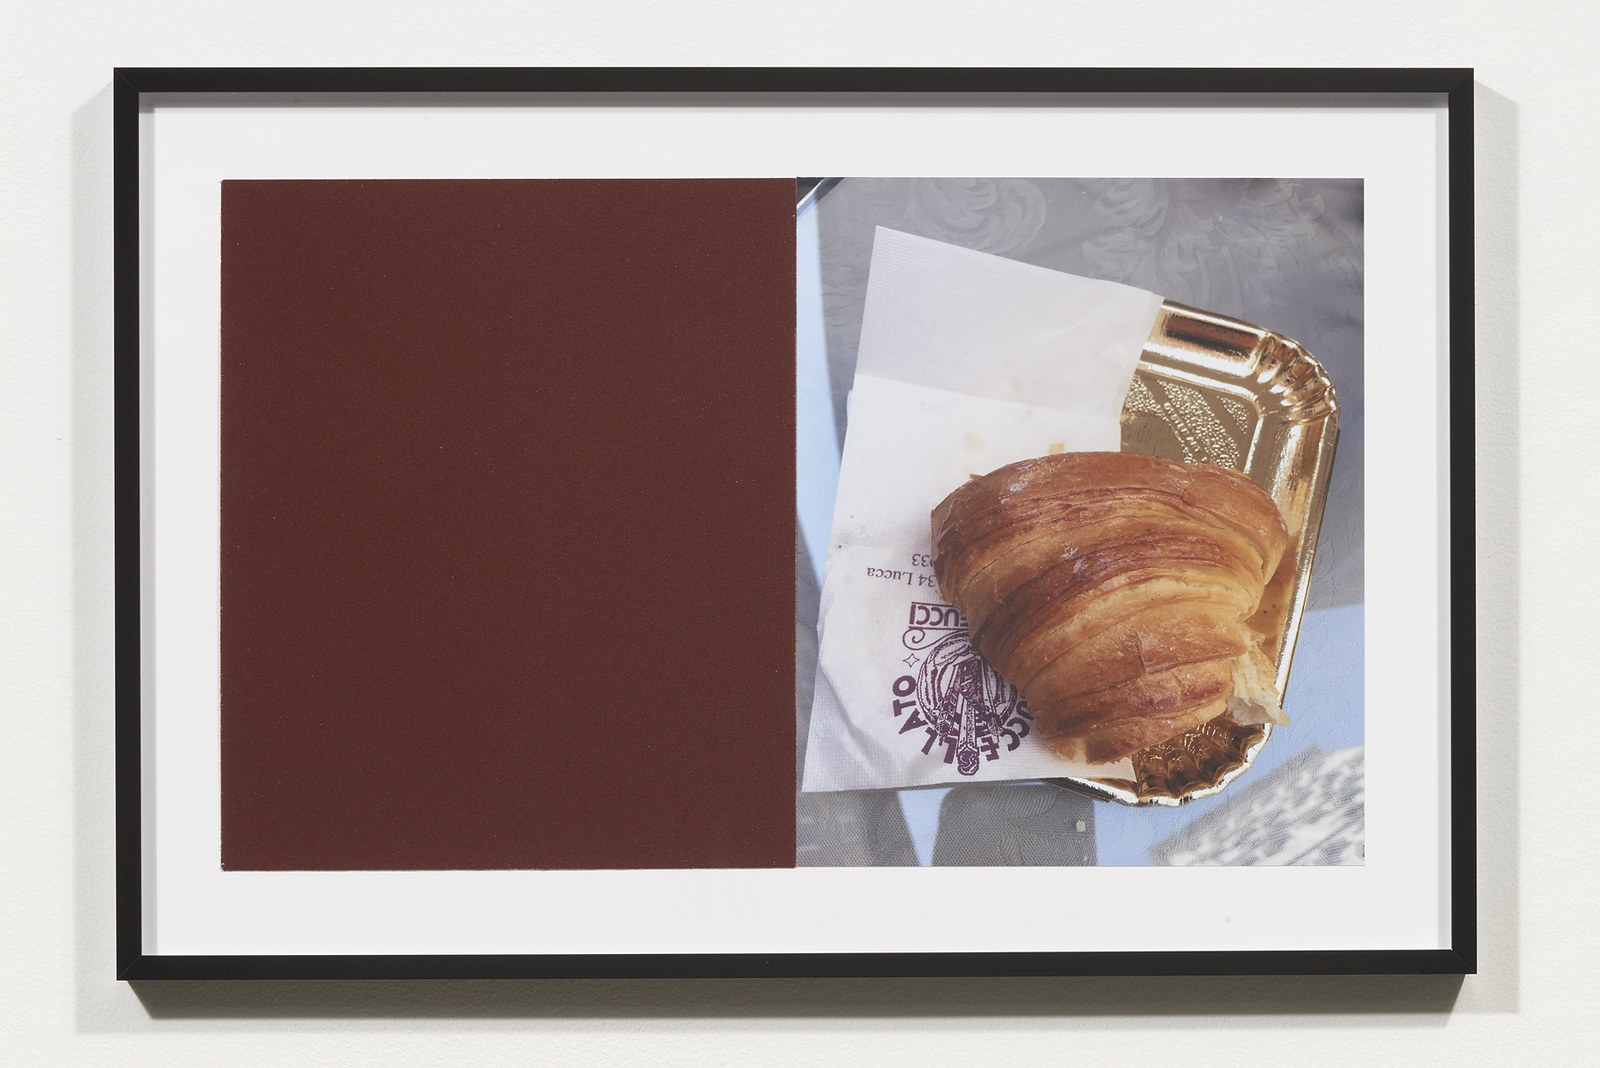 Wermers_Croissants & Architecture #13, 2016_C-print, sandpaper sheet, framed_14 3_8 x 21 1_2 in_NW00054PG